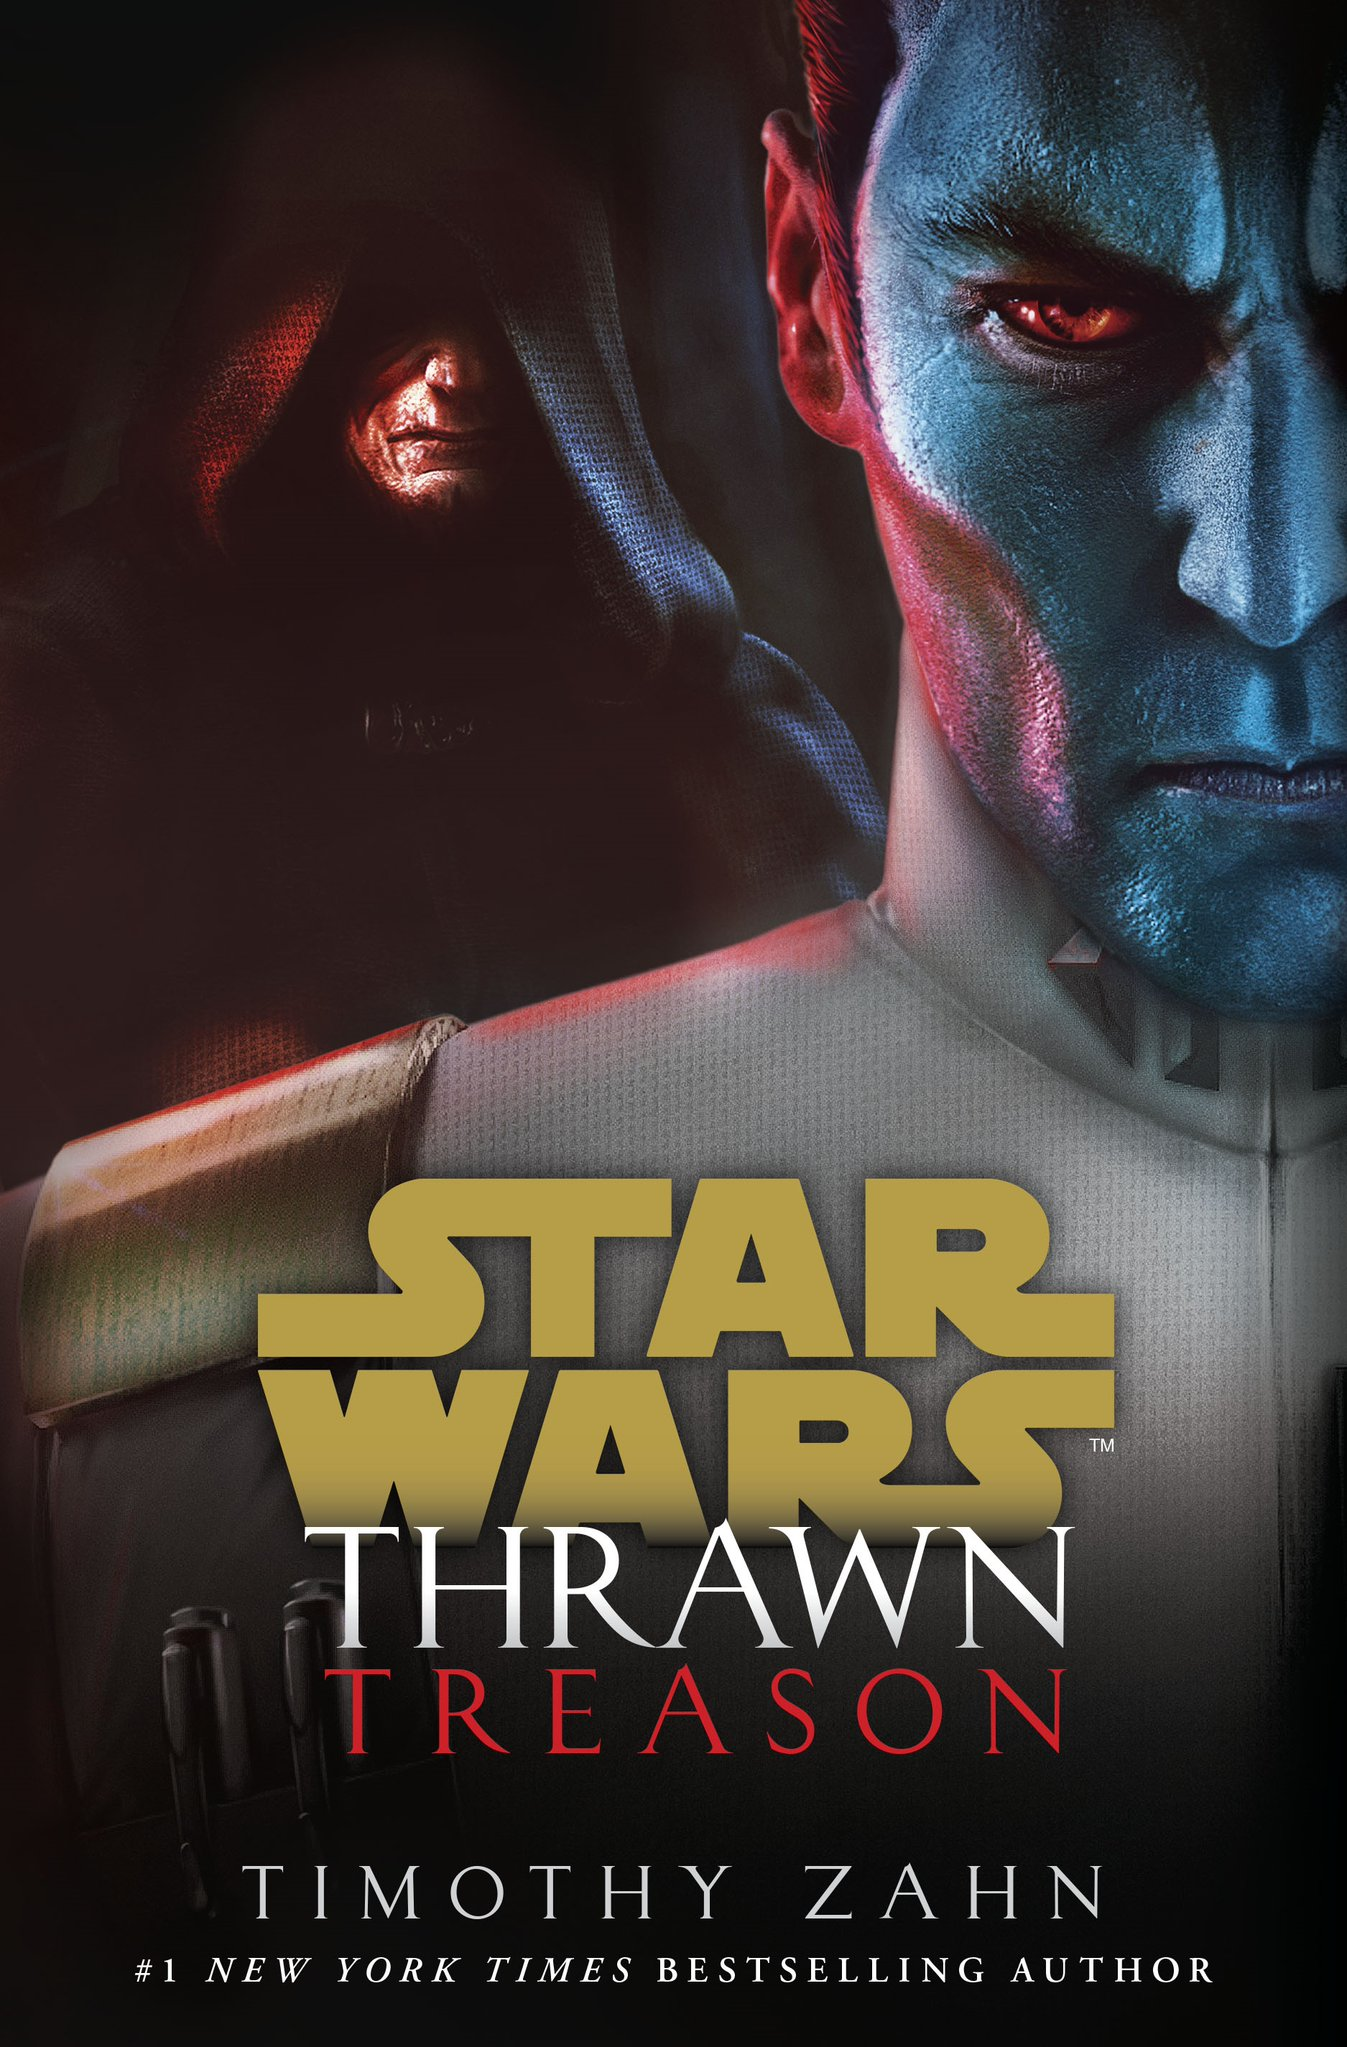 Review Star Wars Thrawn Treason By Timothy Zahn Is The Best Of The Trilogy Star Wars News Net